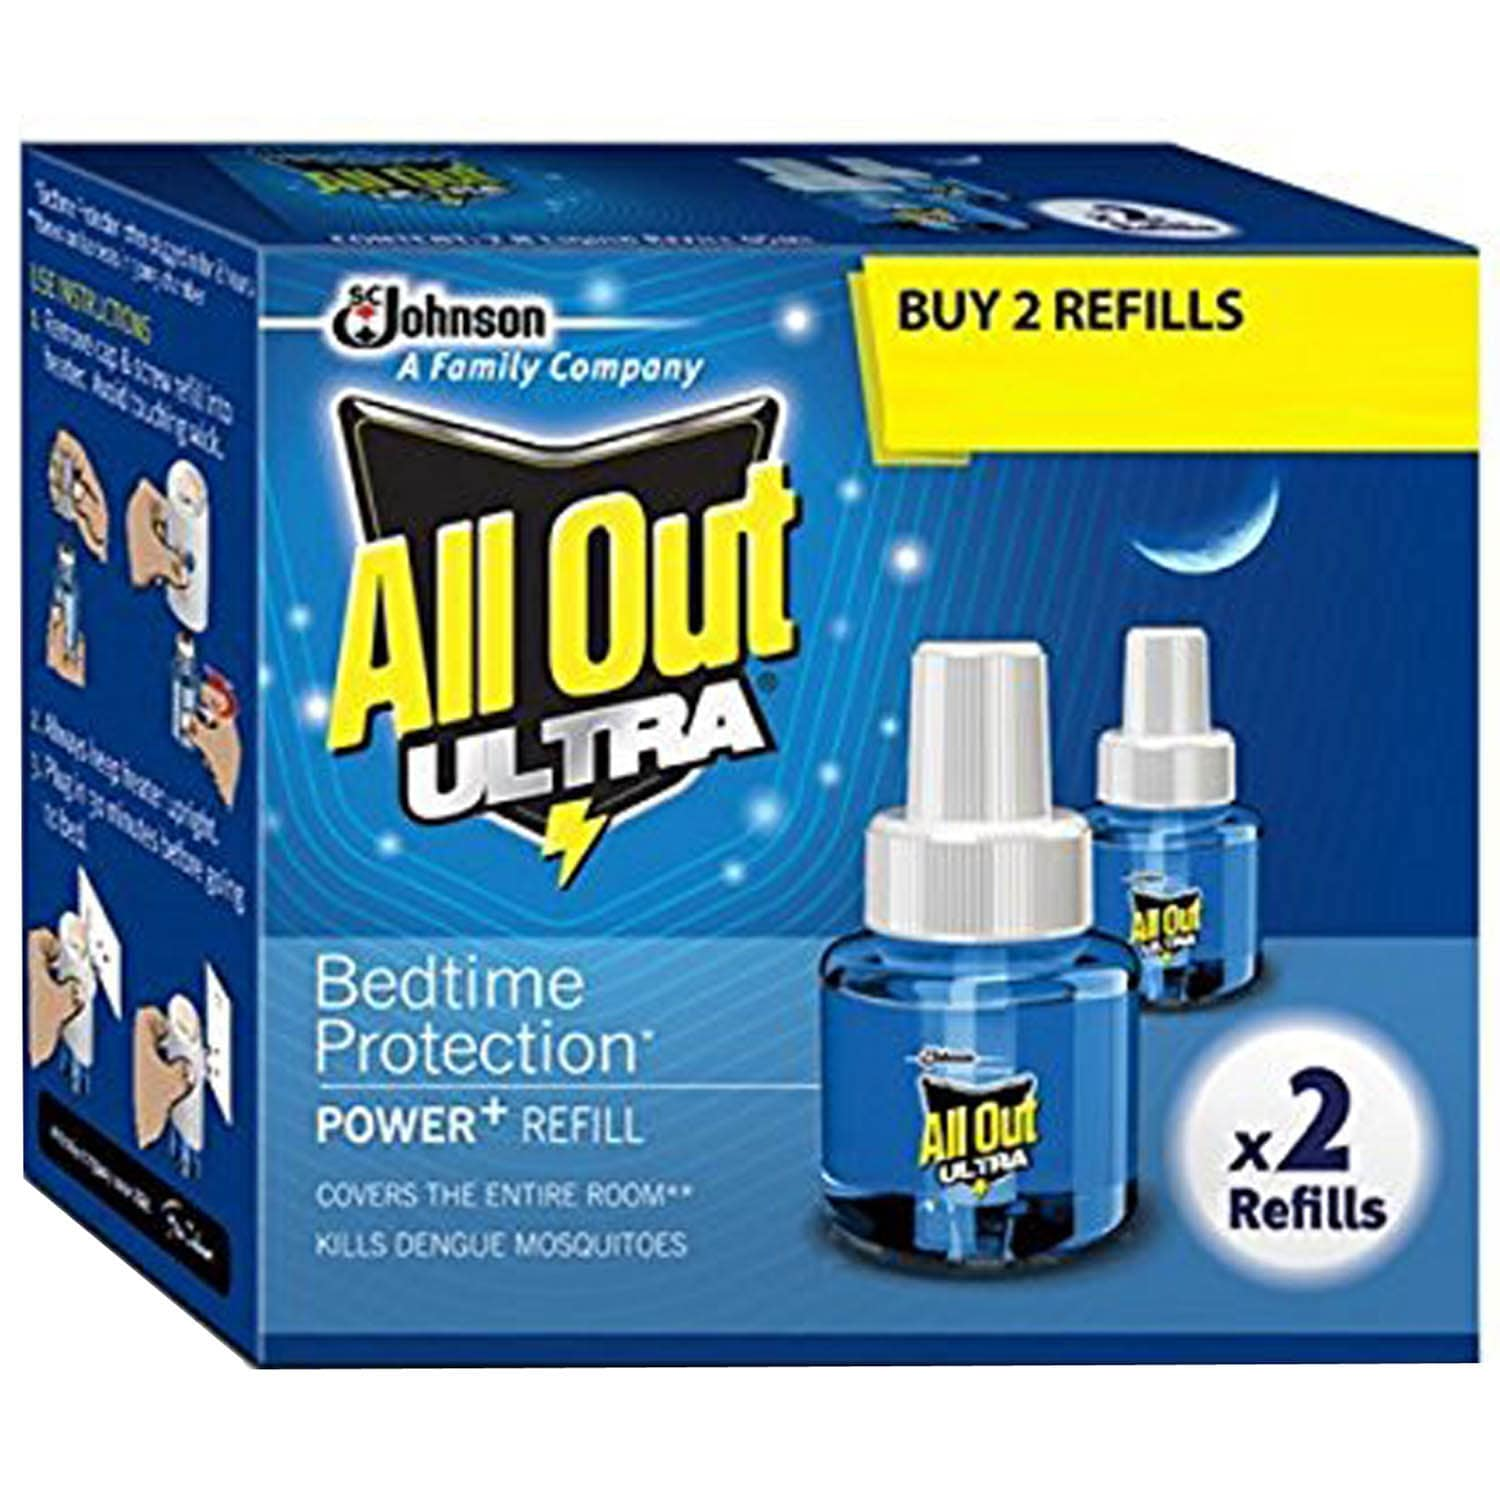 All Out Ultra Refill Pack, 2 Count, Pack of 1